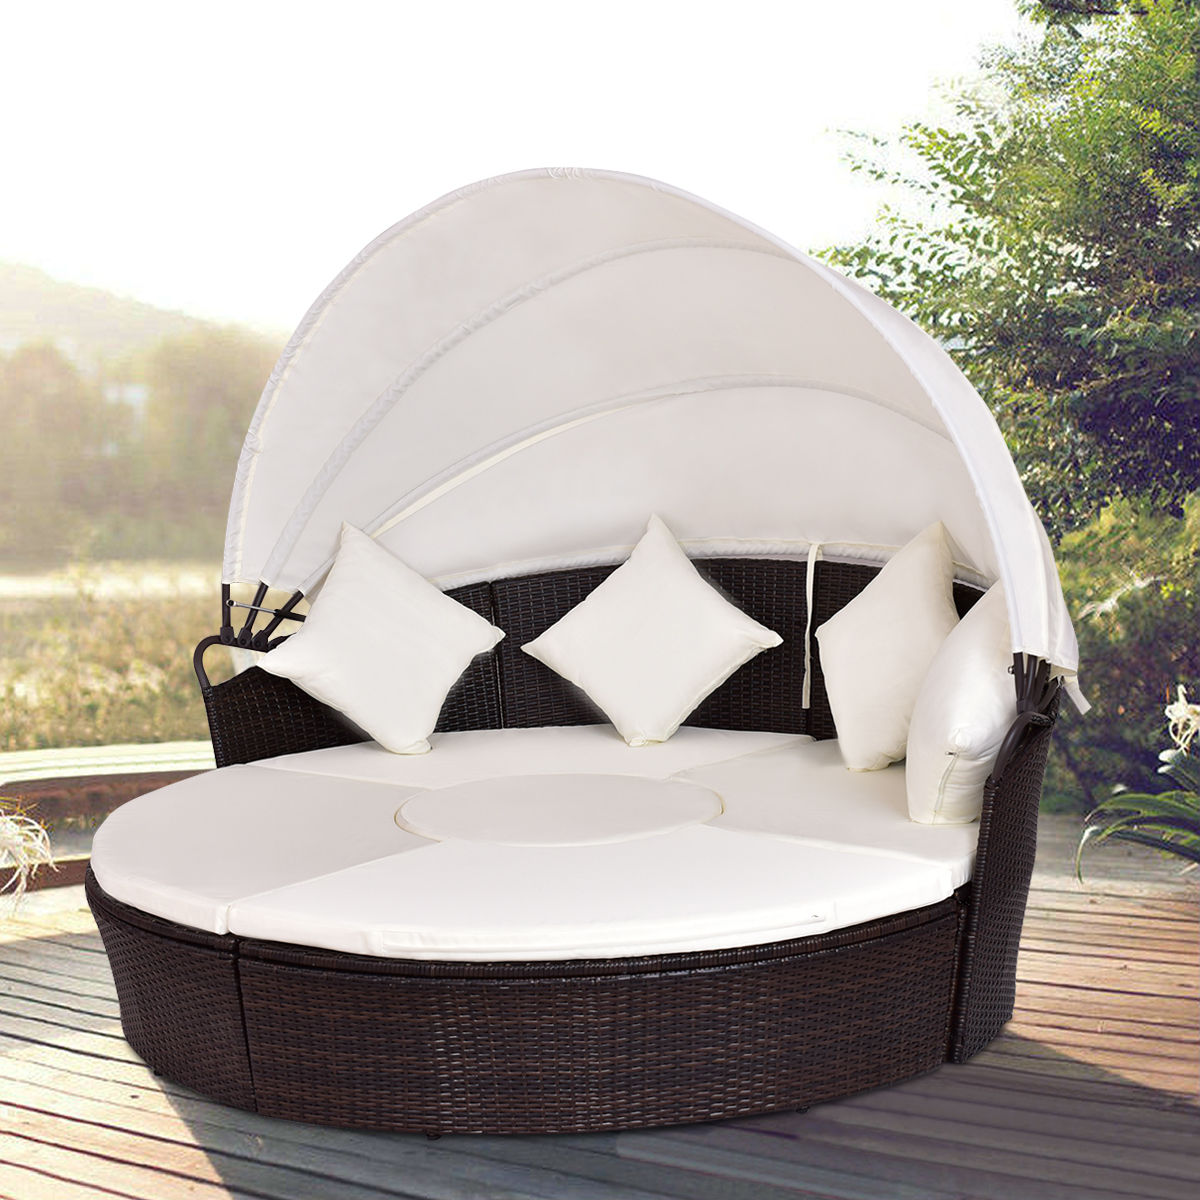 Giantex Outdoor Patio Canopy Cushioned <font><b>Daybed</b></font> Round Retractable Sofa Bed Modern Rattan Furniture Set HW54808+